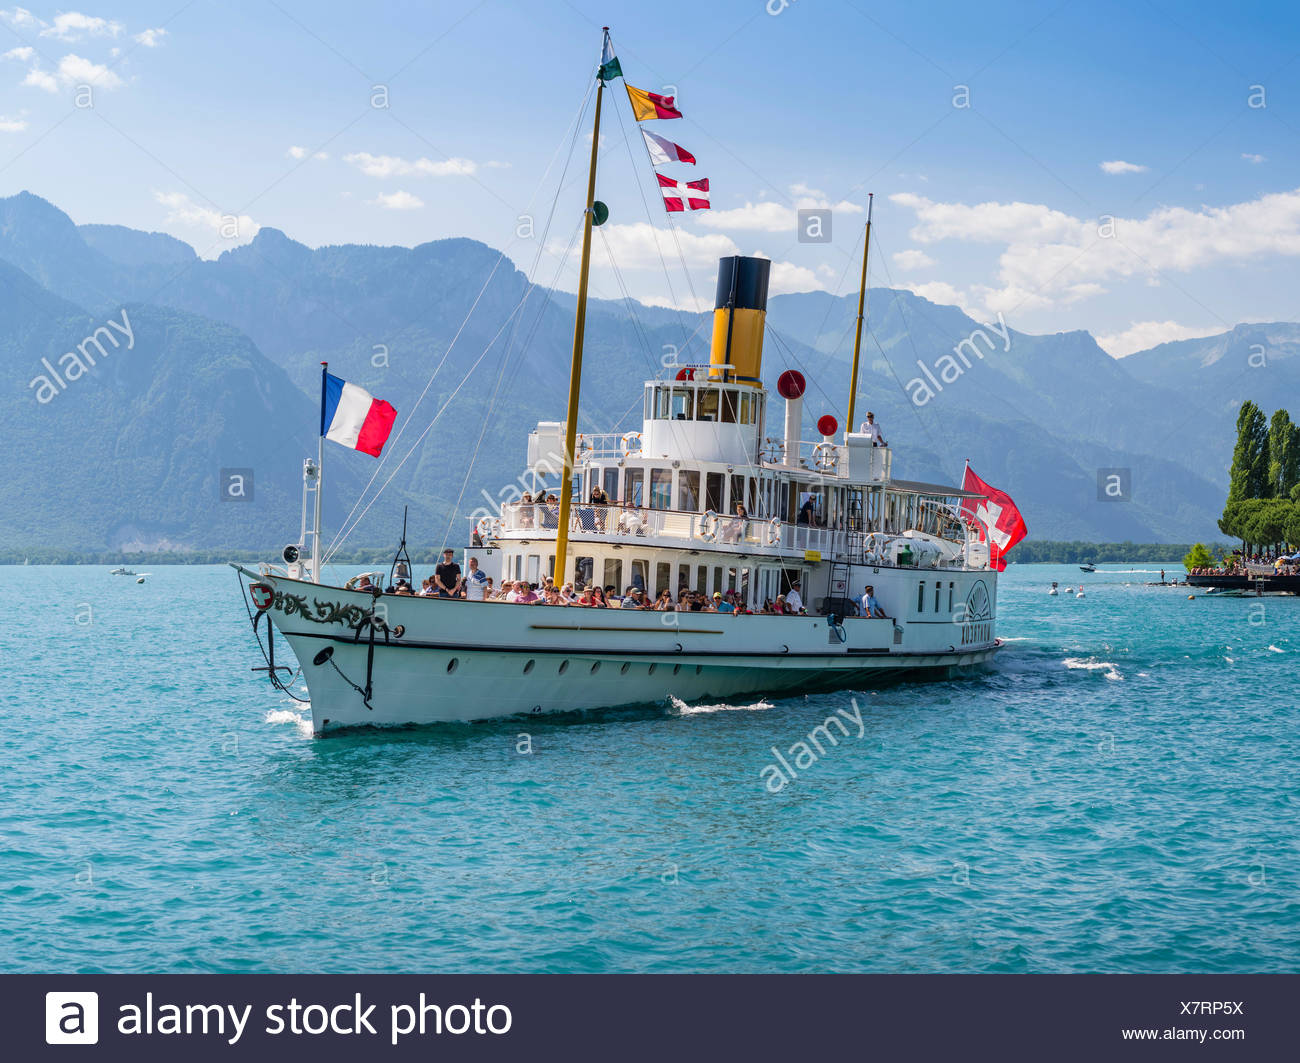 Steamboat on the Lake Geneva near Montreux Stock Photo